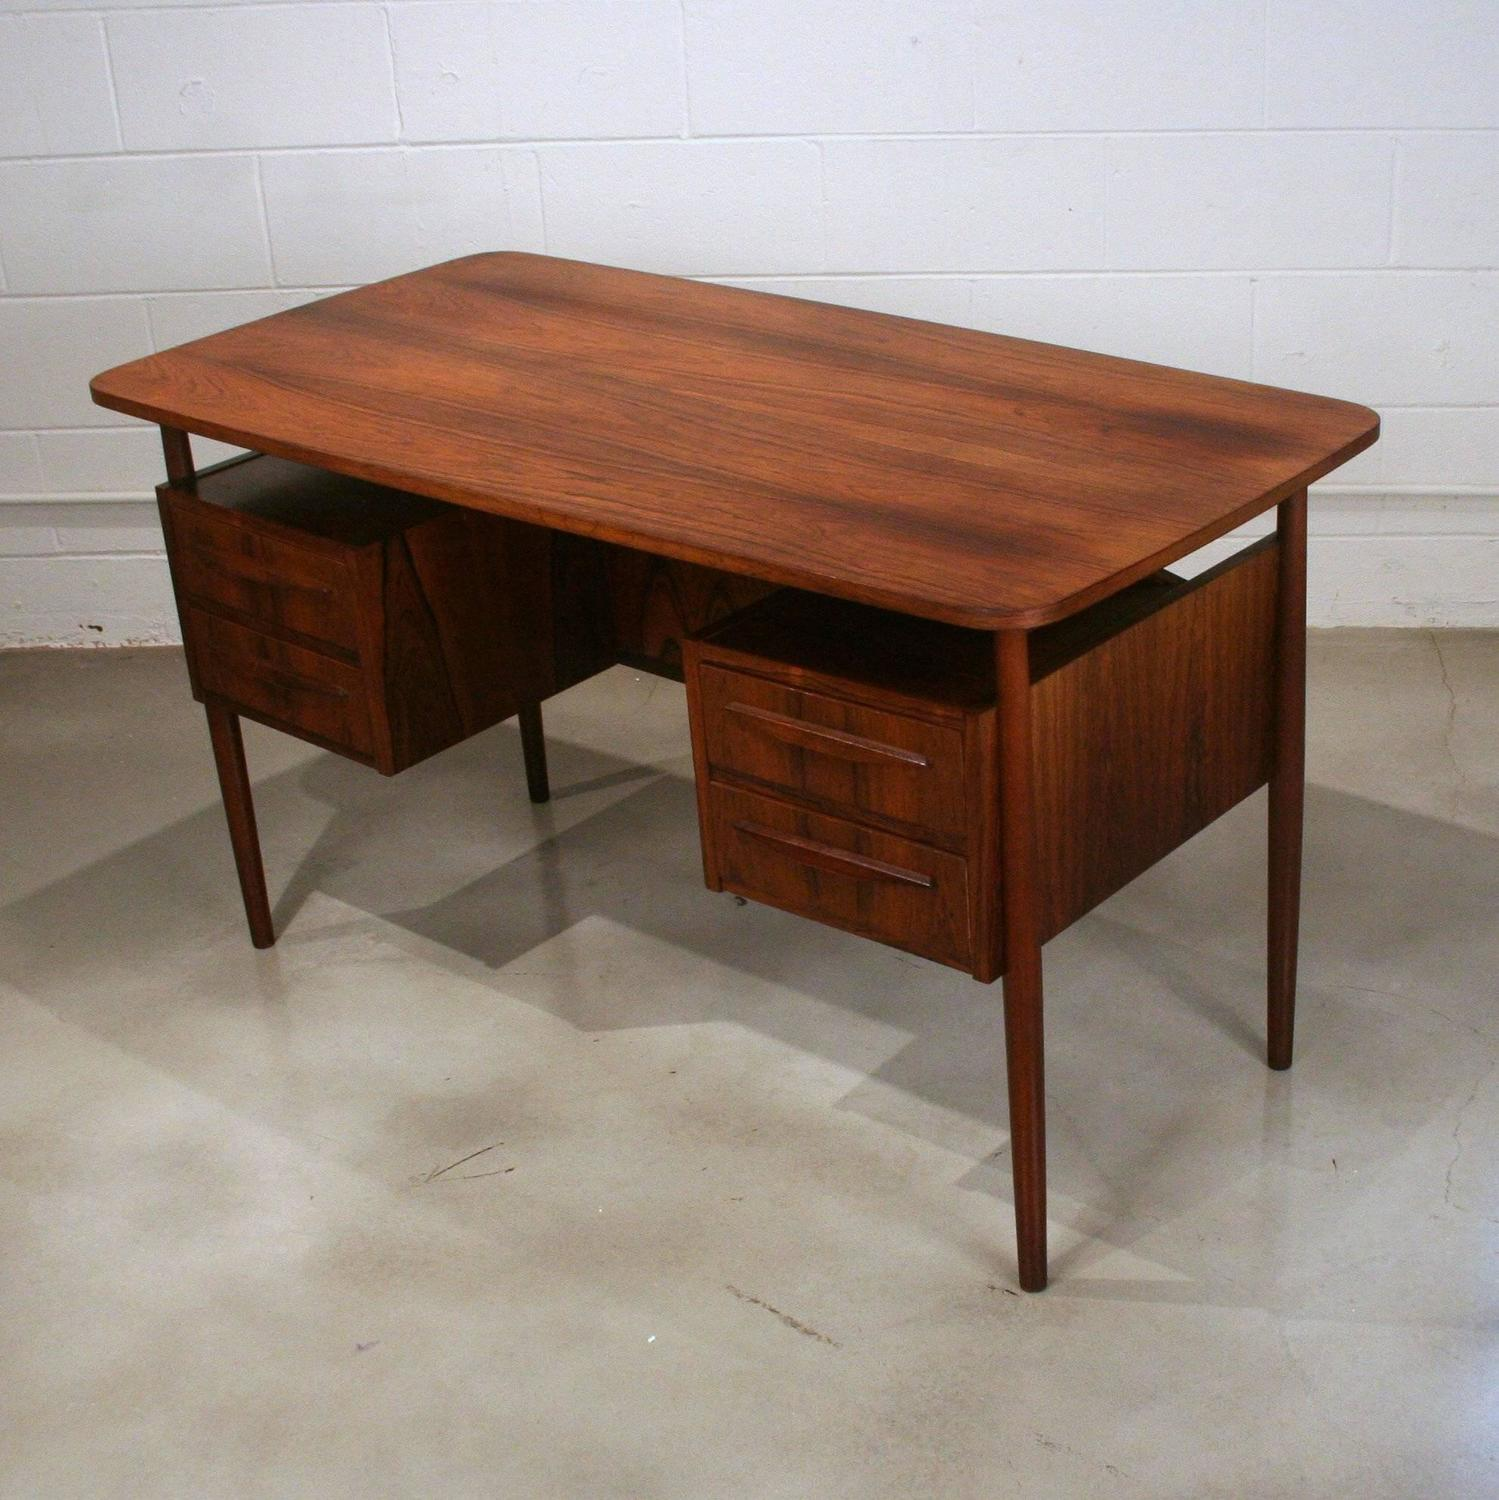 #34190B Vintage Danish Rosewood Writing Desk For Sale At 1stdibs with 1499x1500 px of Best Vintage Writing Desks 15001499 image @ avoidforclosure.info